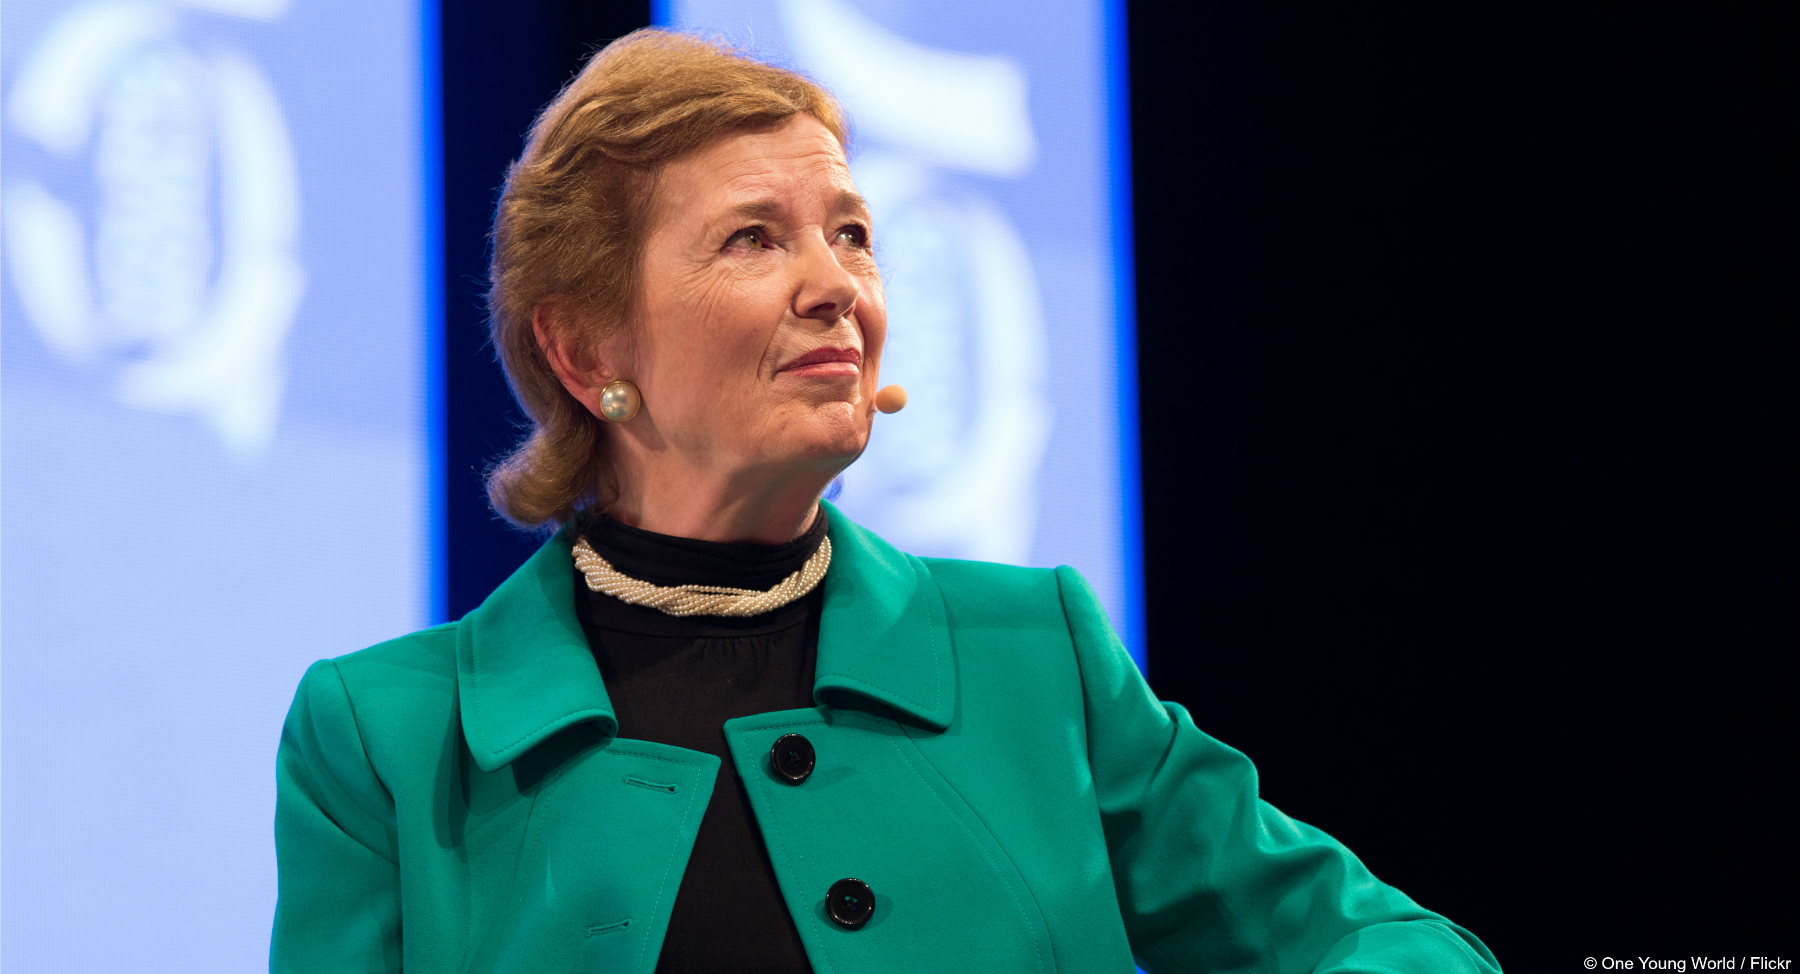 EJF welcomes the news that Mary Robinson has been appointed as the United Nations Secretary-General's Special Envoy for Climate Change.